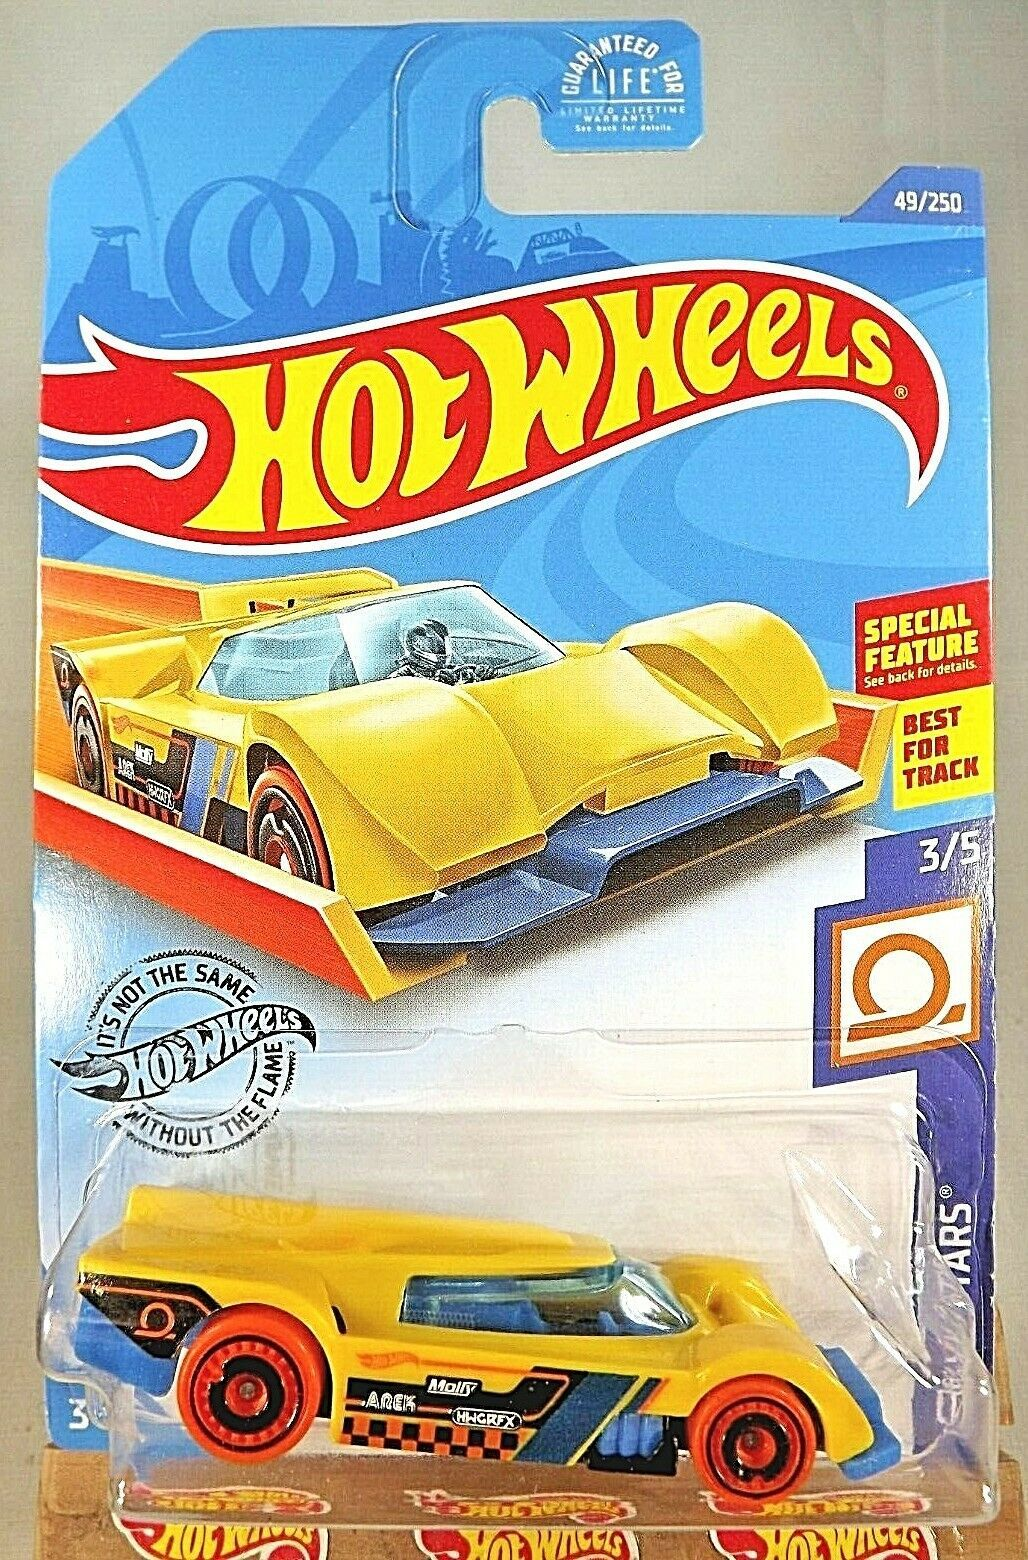 Primary image for 2020 Hot Wheels #49 Track Stars 3/5 GRUPPO x24 Yellow Variant wOrange Whls AD Sp